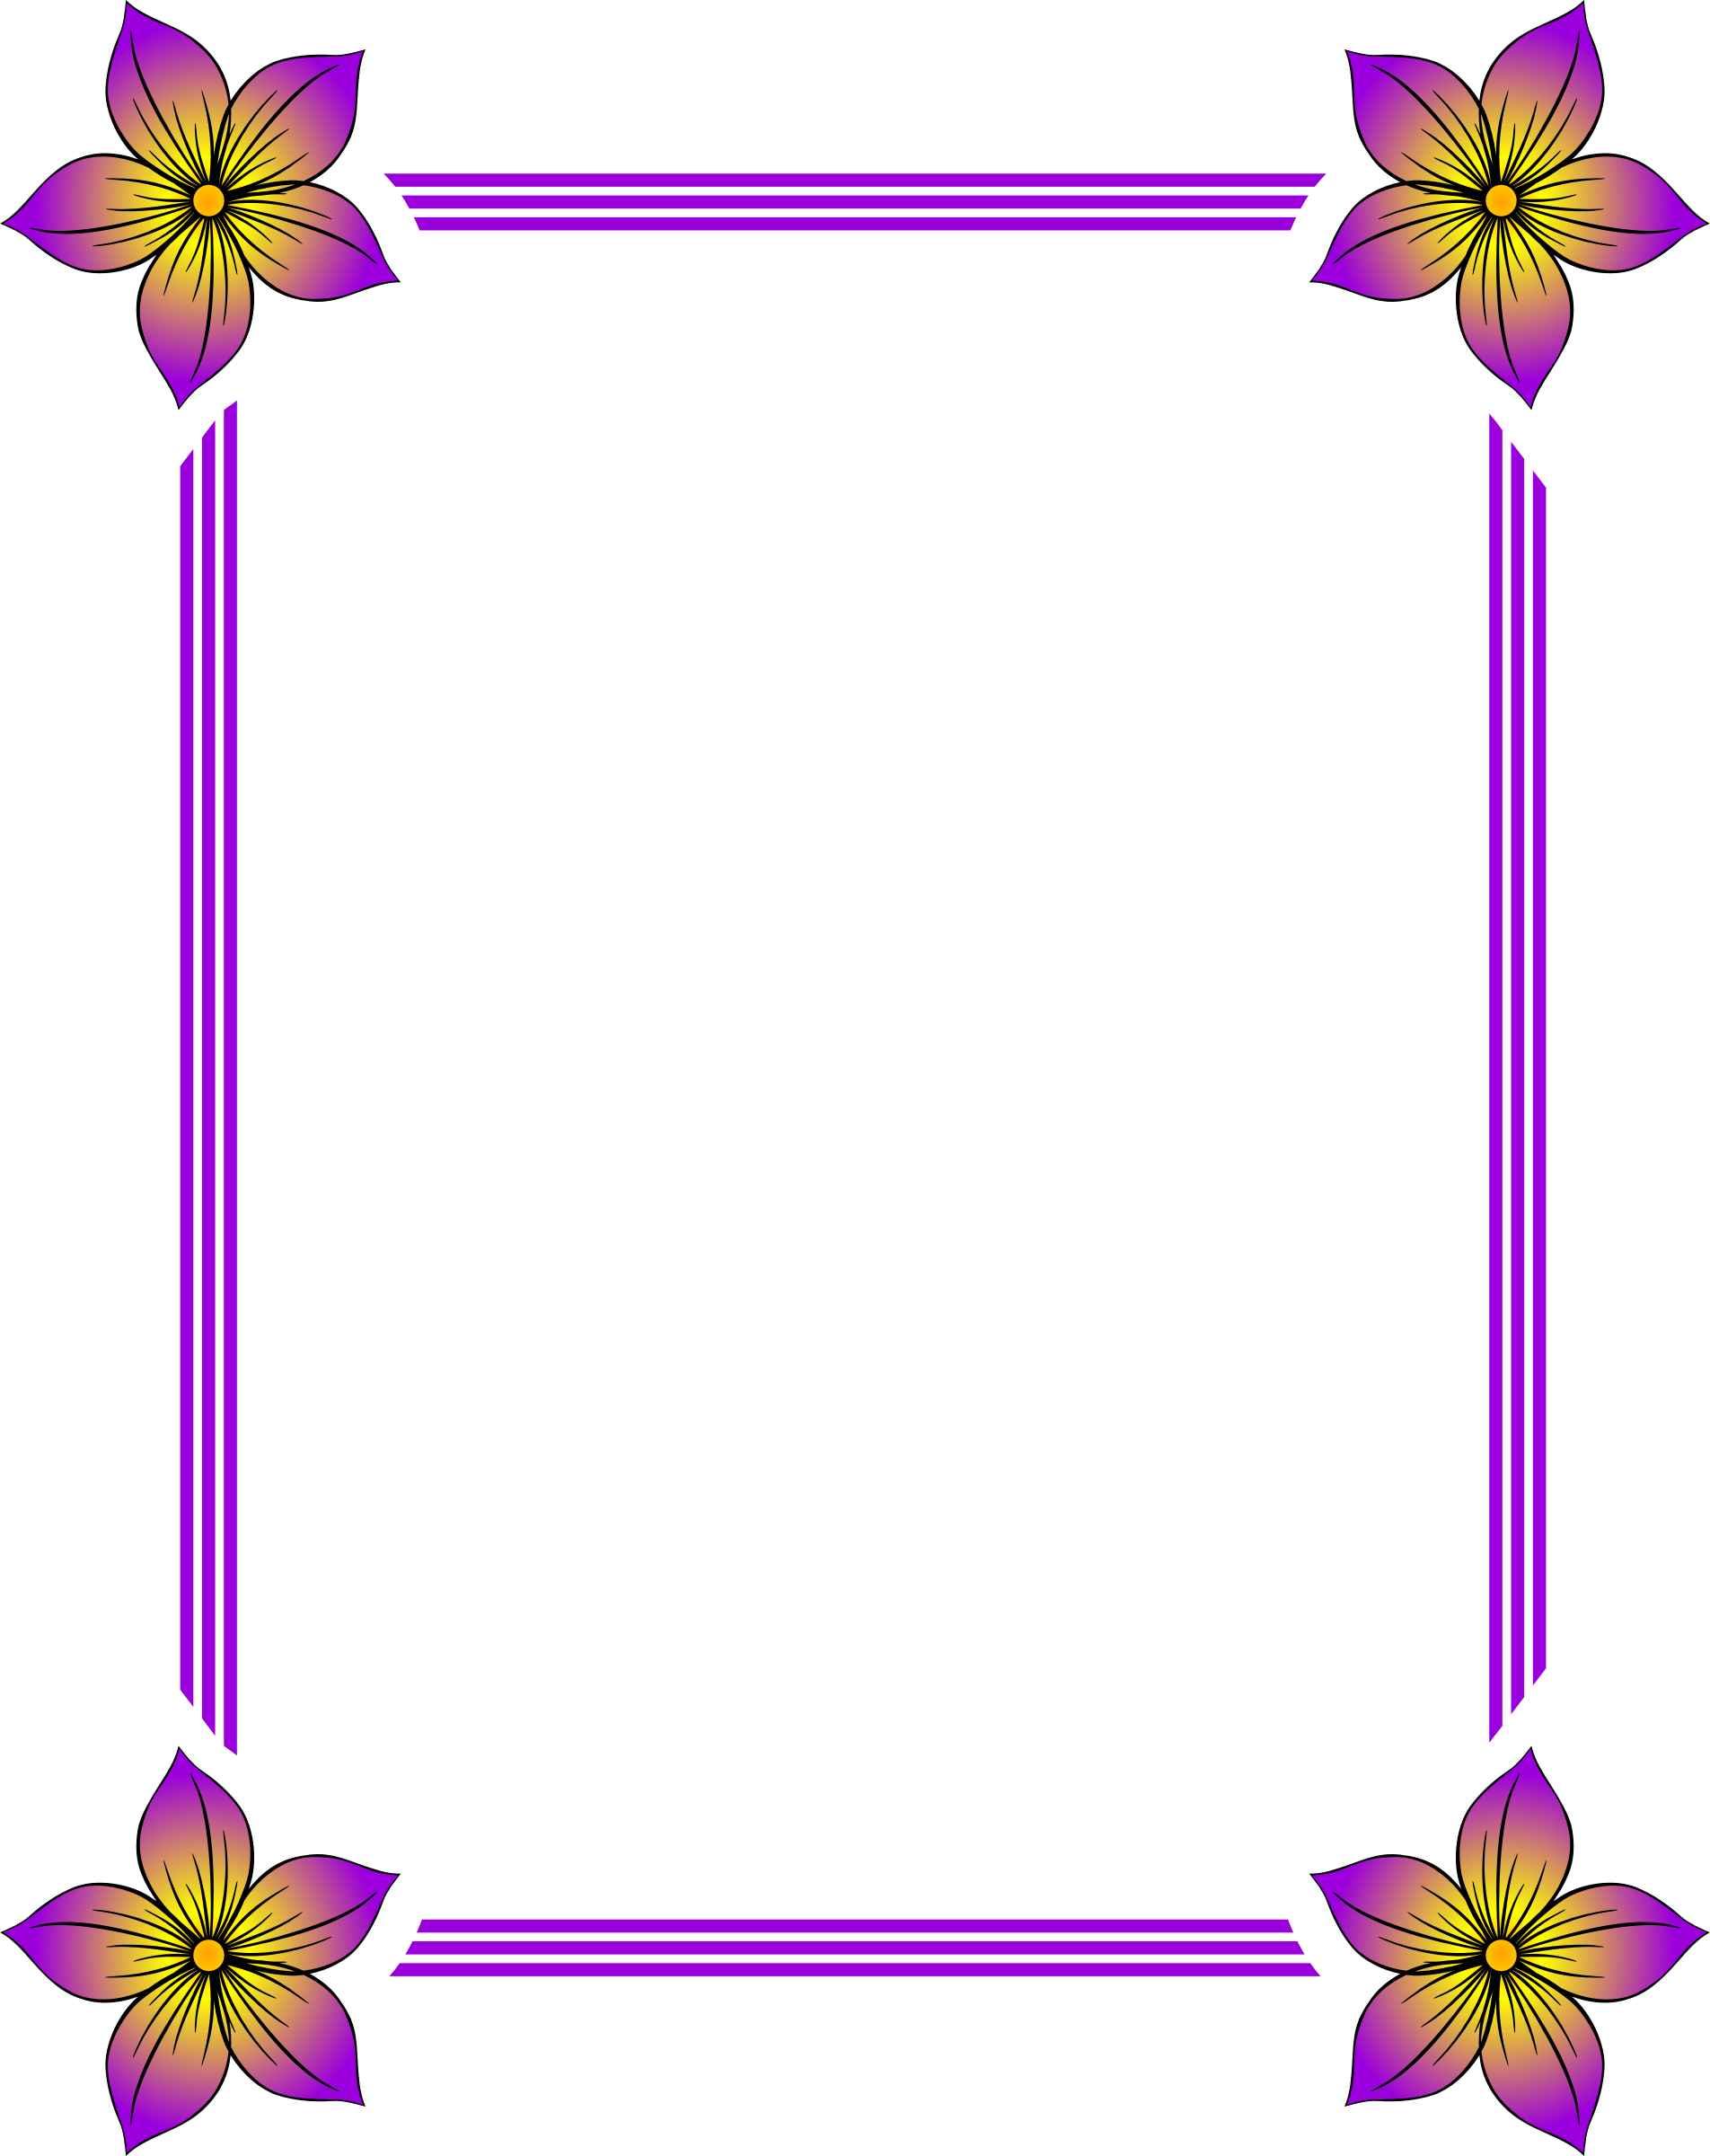 Floral frame 45 by Firkin